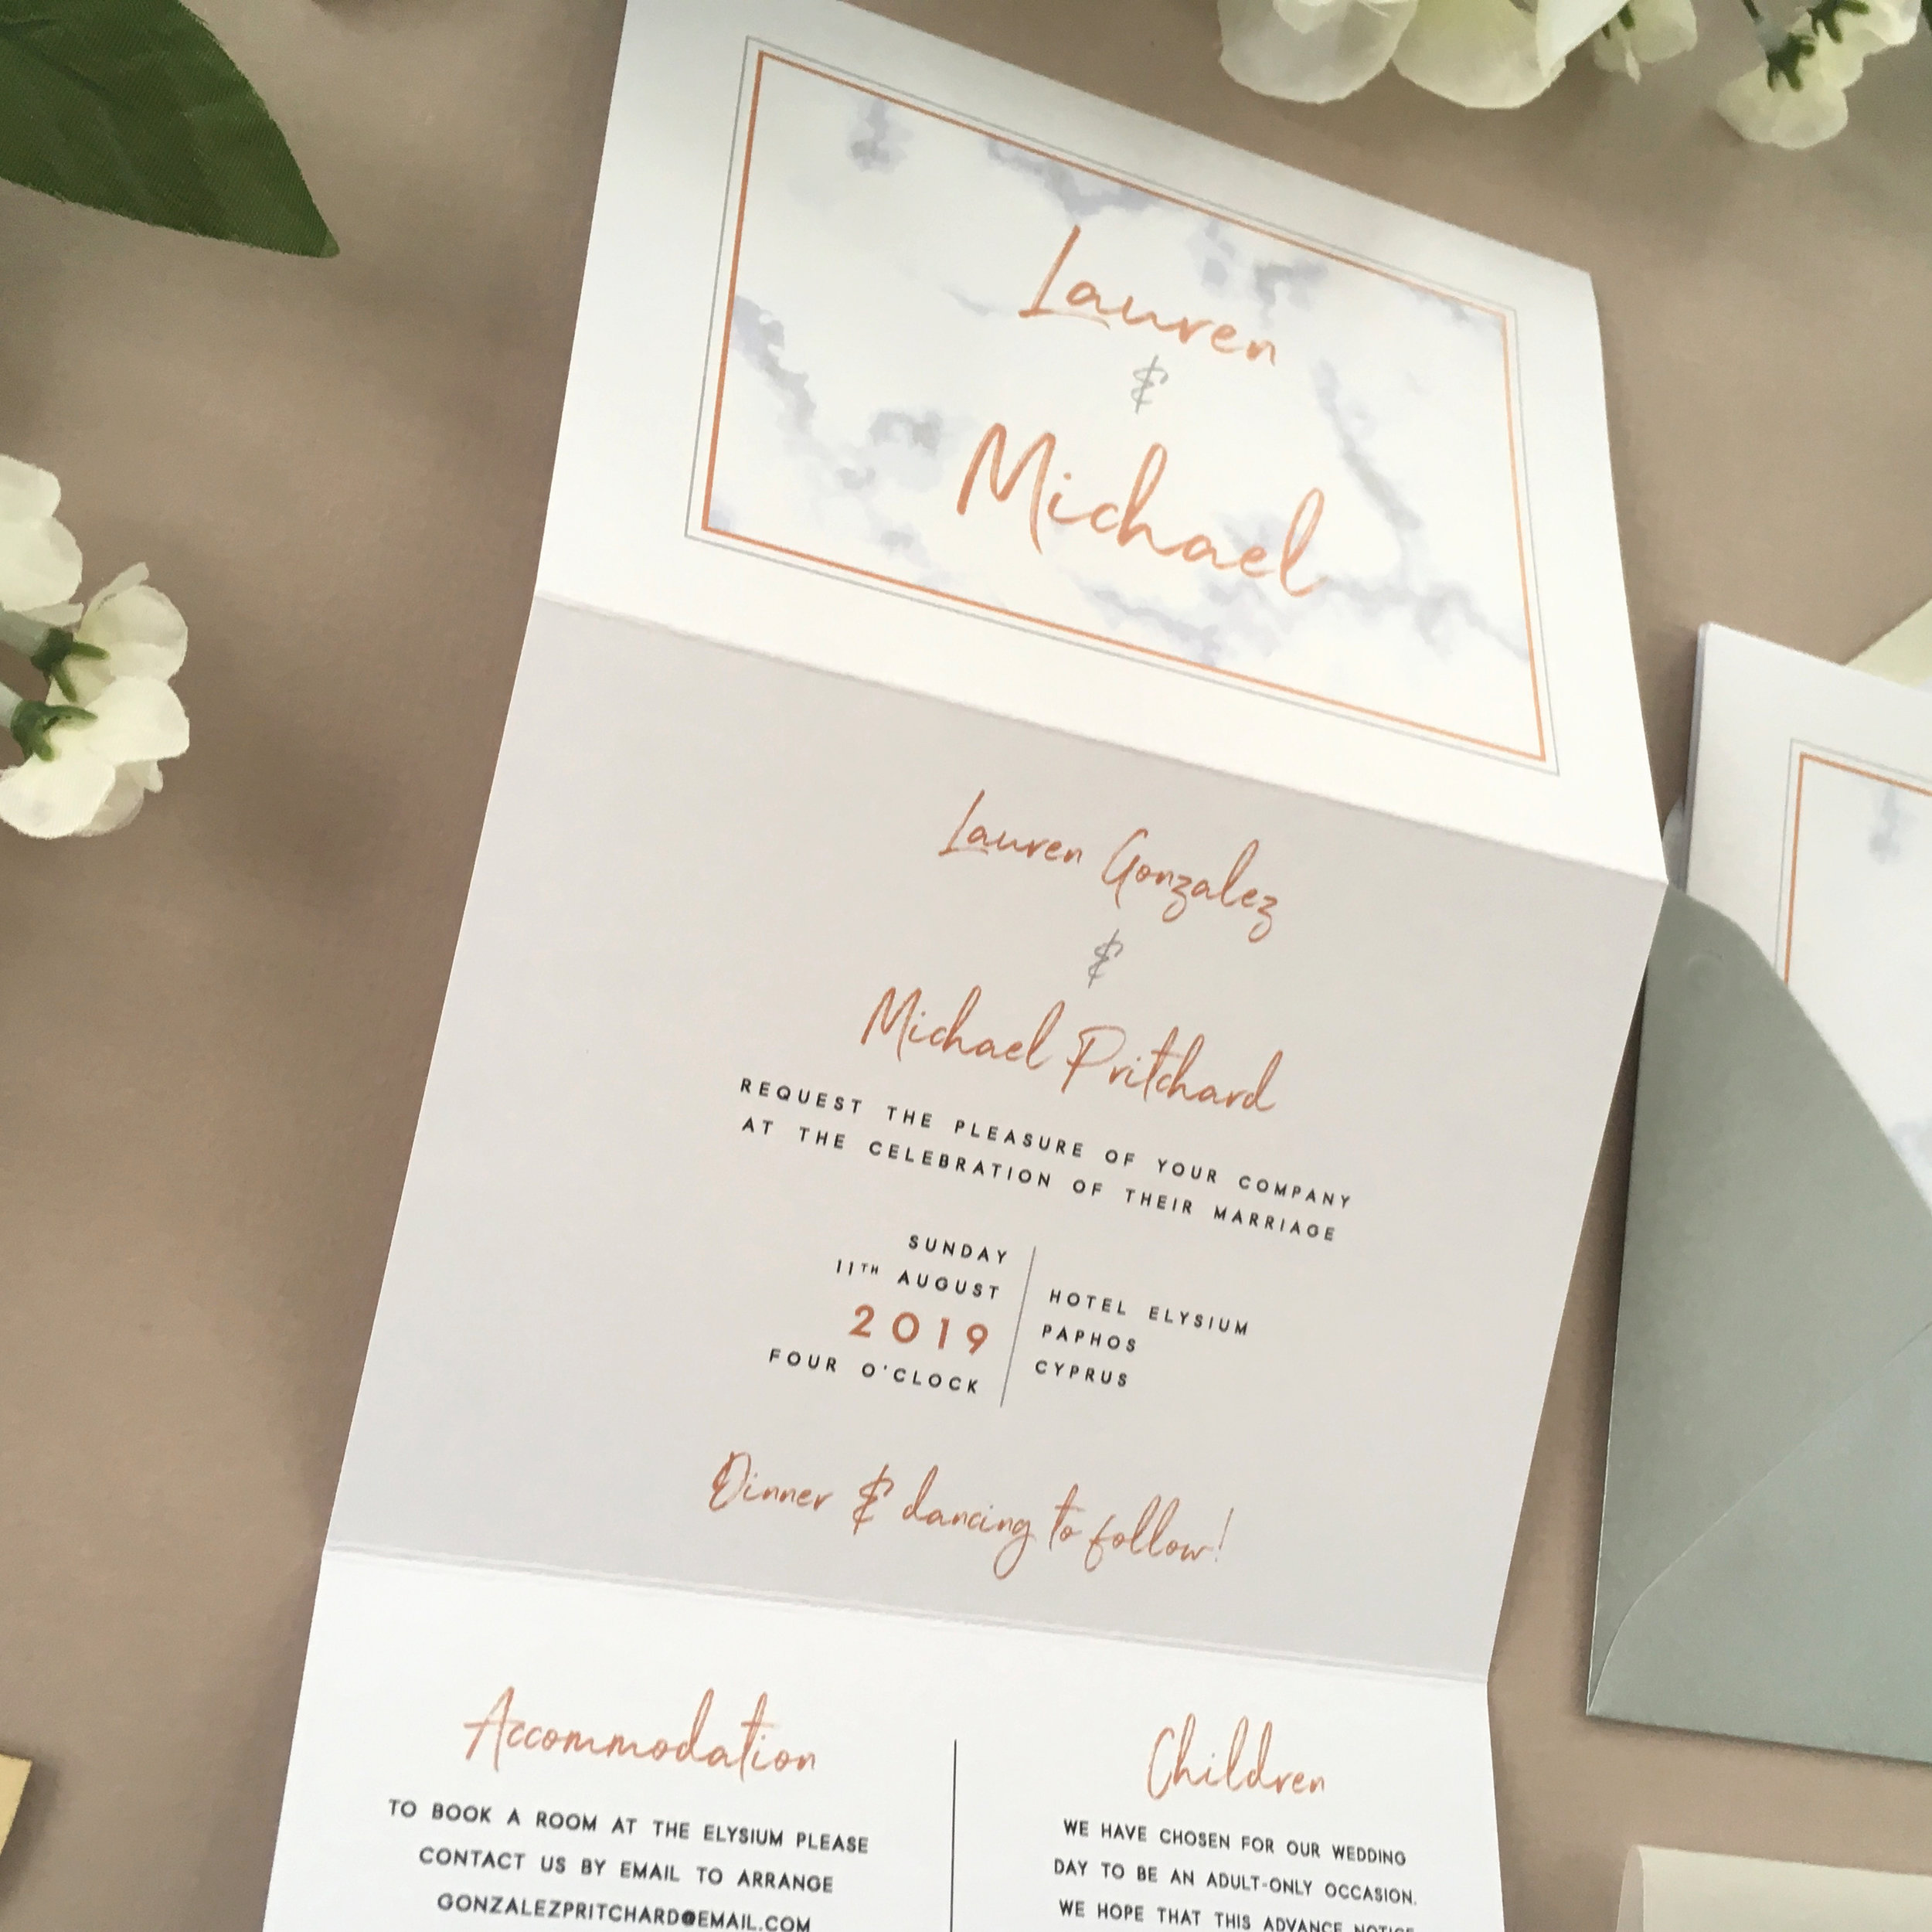 All-in-One Design - The concertina style is extremely popular for it's unique layout and for offering everything needed in a simple all-in-one package.Perfect for smaller amounts of information, this unique design is a modern alternative to more classical invitation styles.